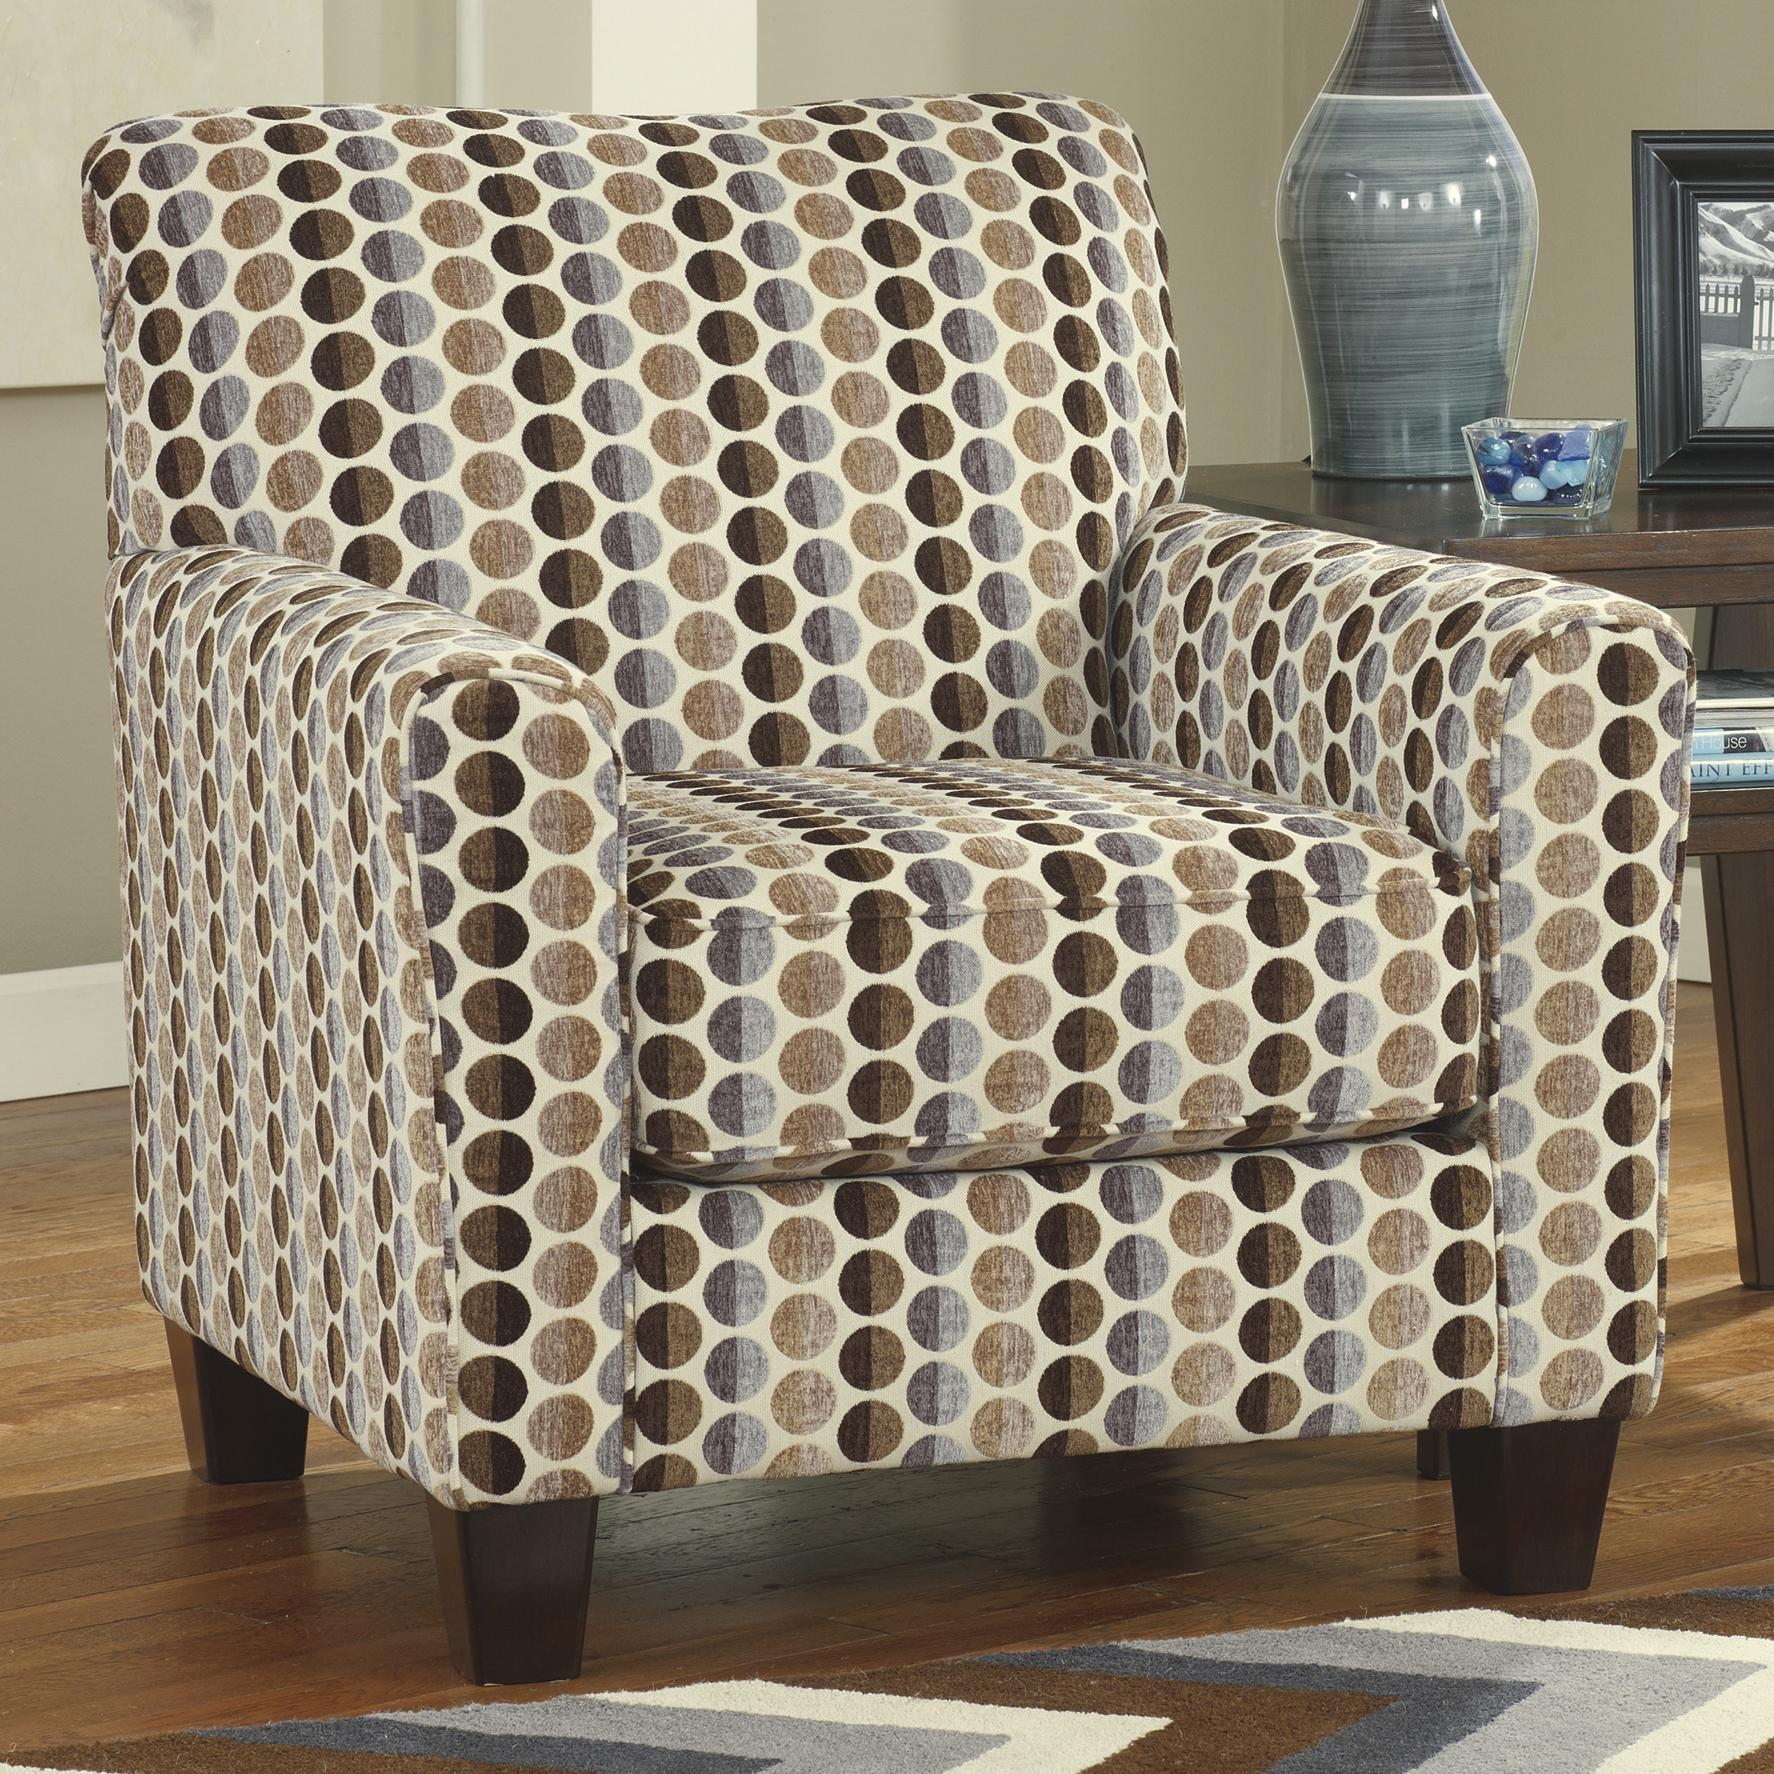 Ashley Furniture Geordie Accent Chair - Item Number: 2350021